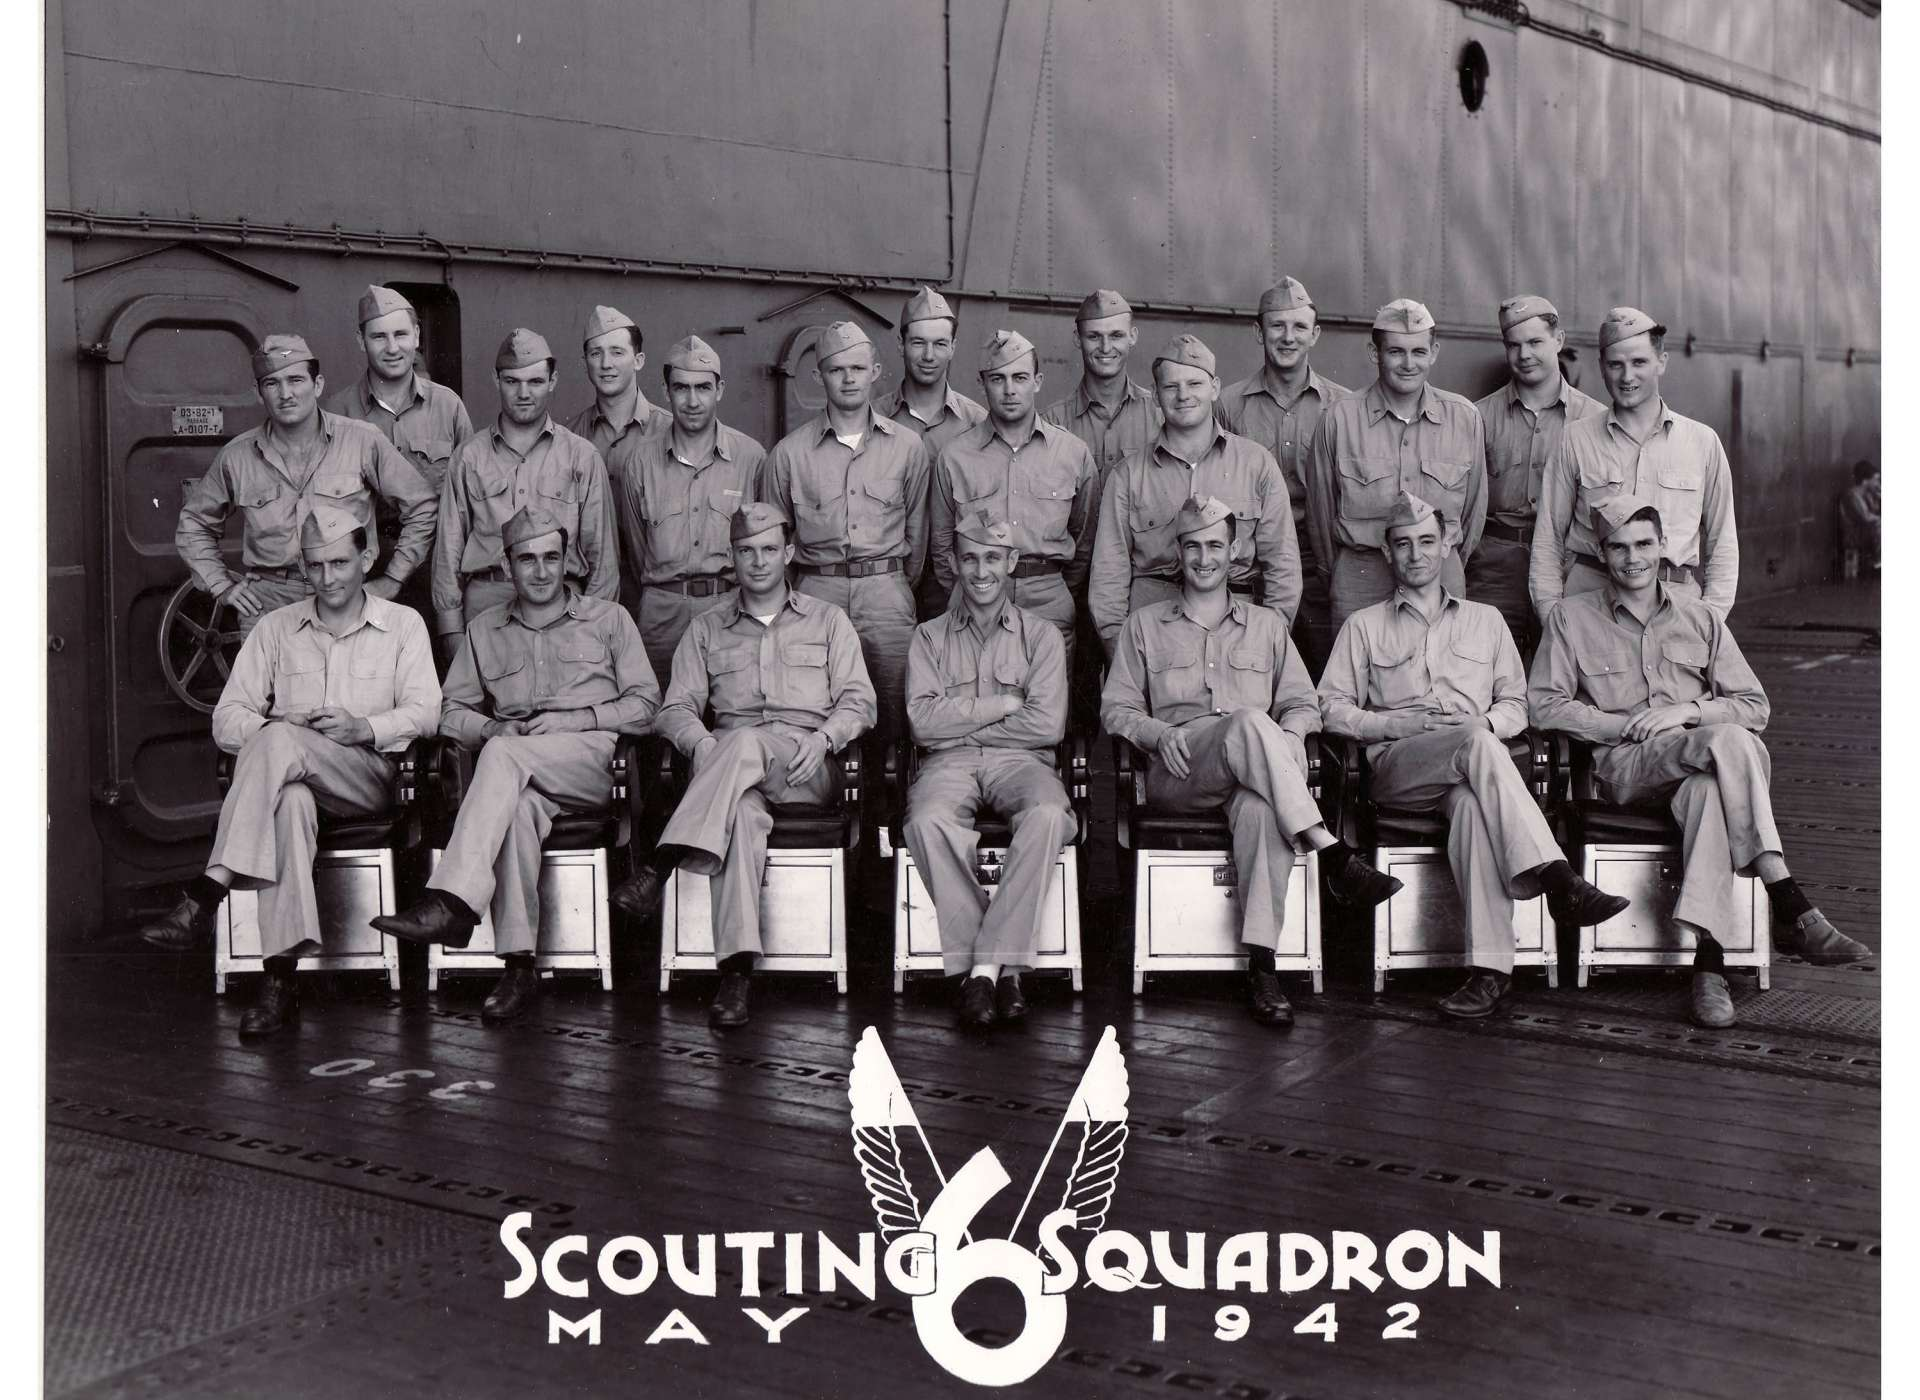 VS-6 pilots in 1942. Dusty Kleiss sitting second from right.